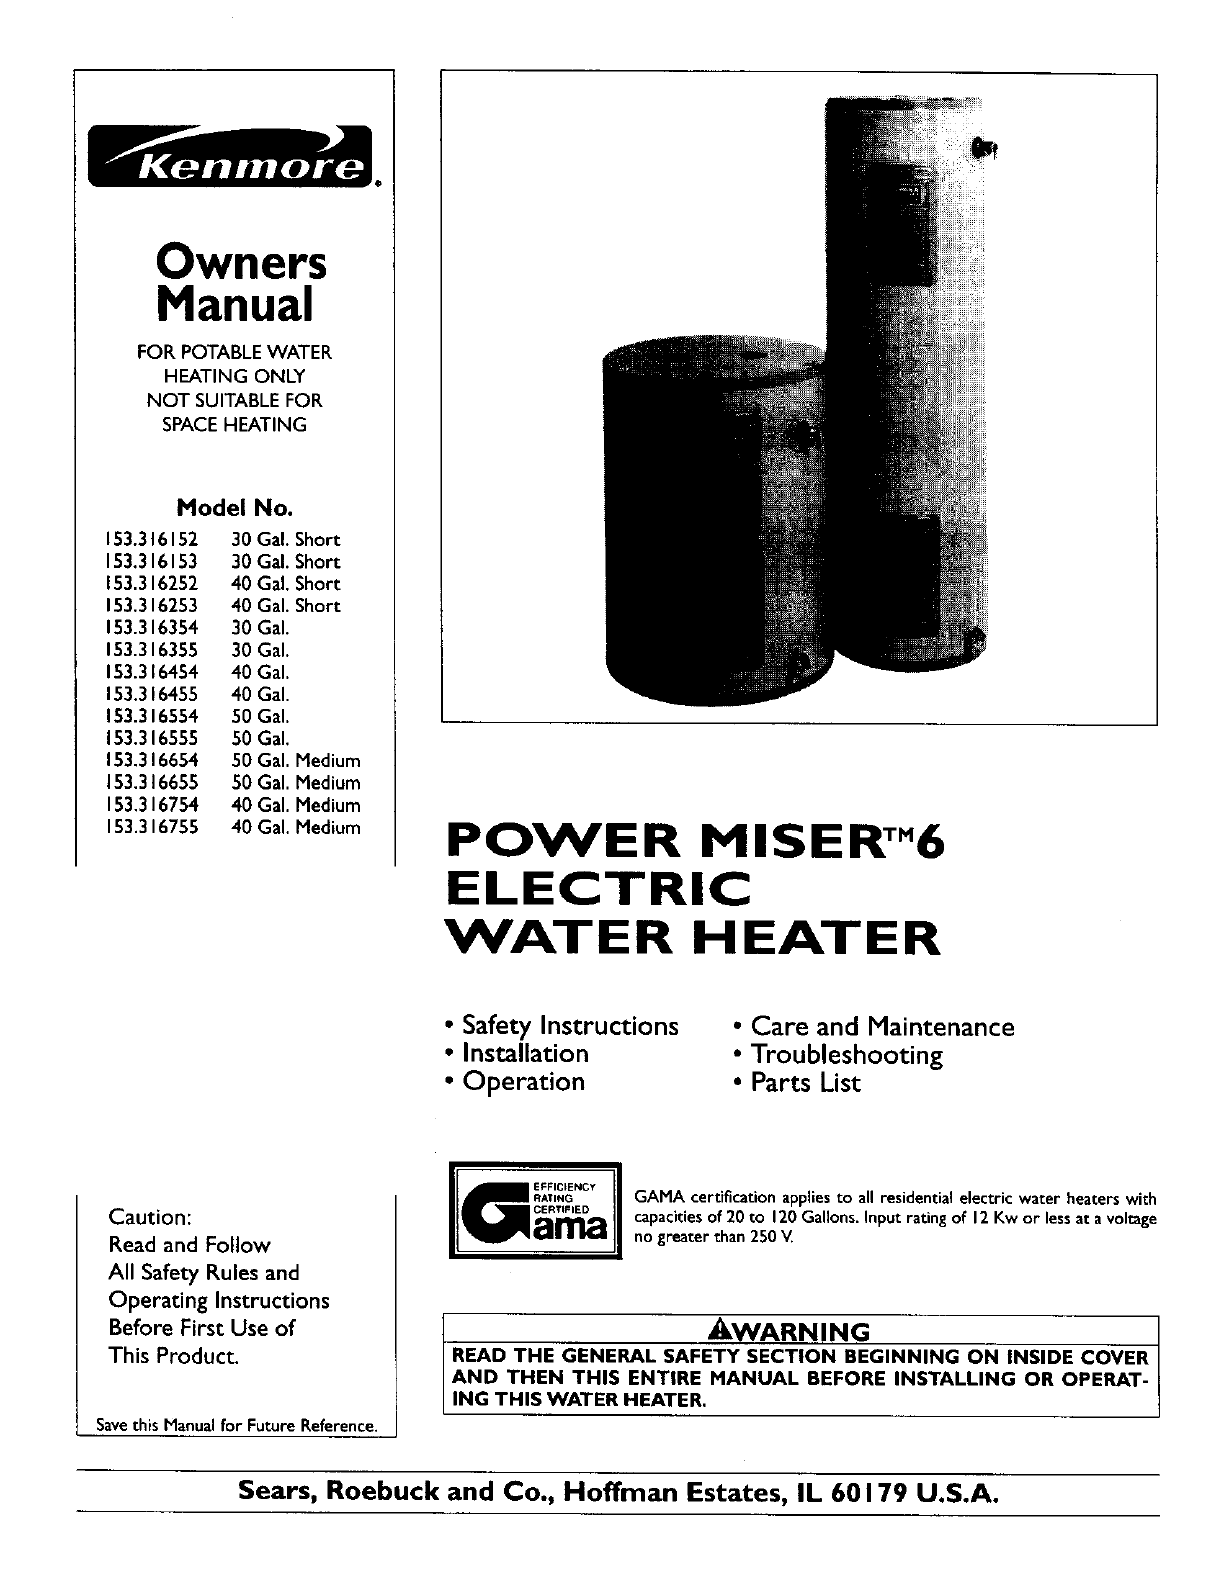 Kenmore water heater 153316555 user guide manualsonline owners manual ccuart Image collections